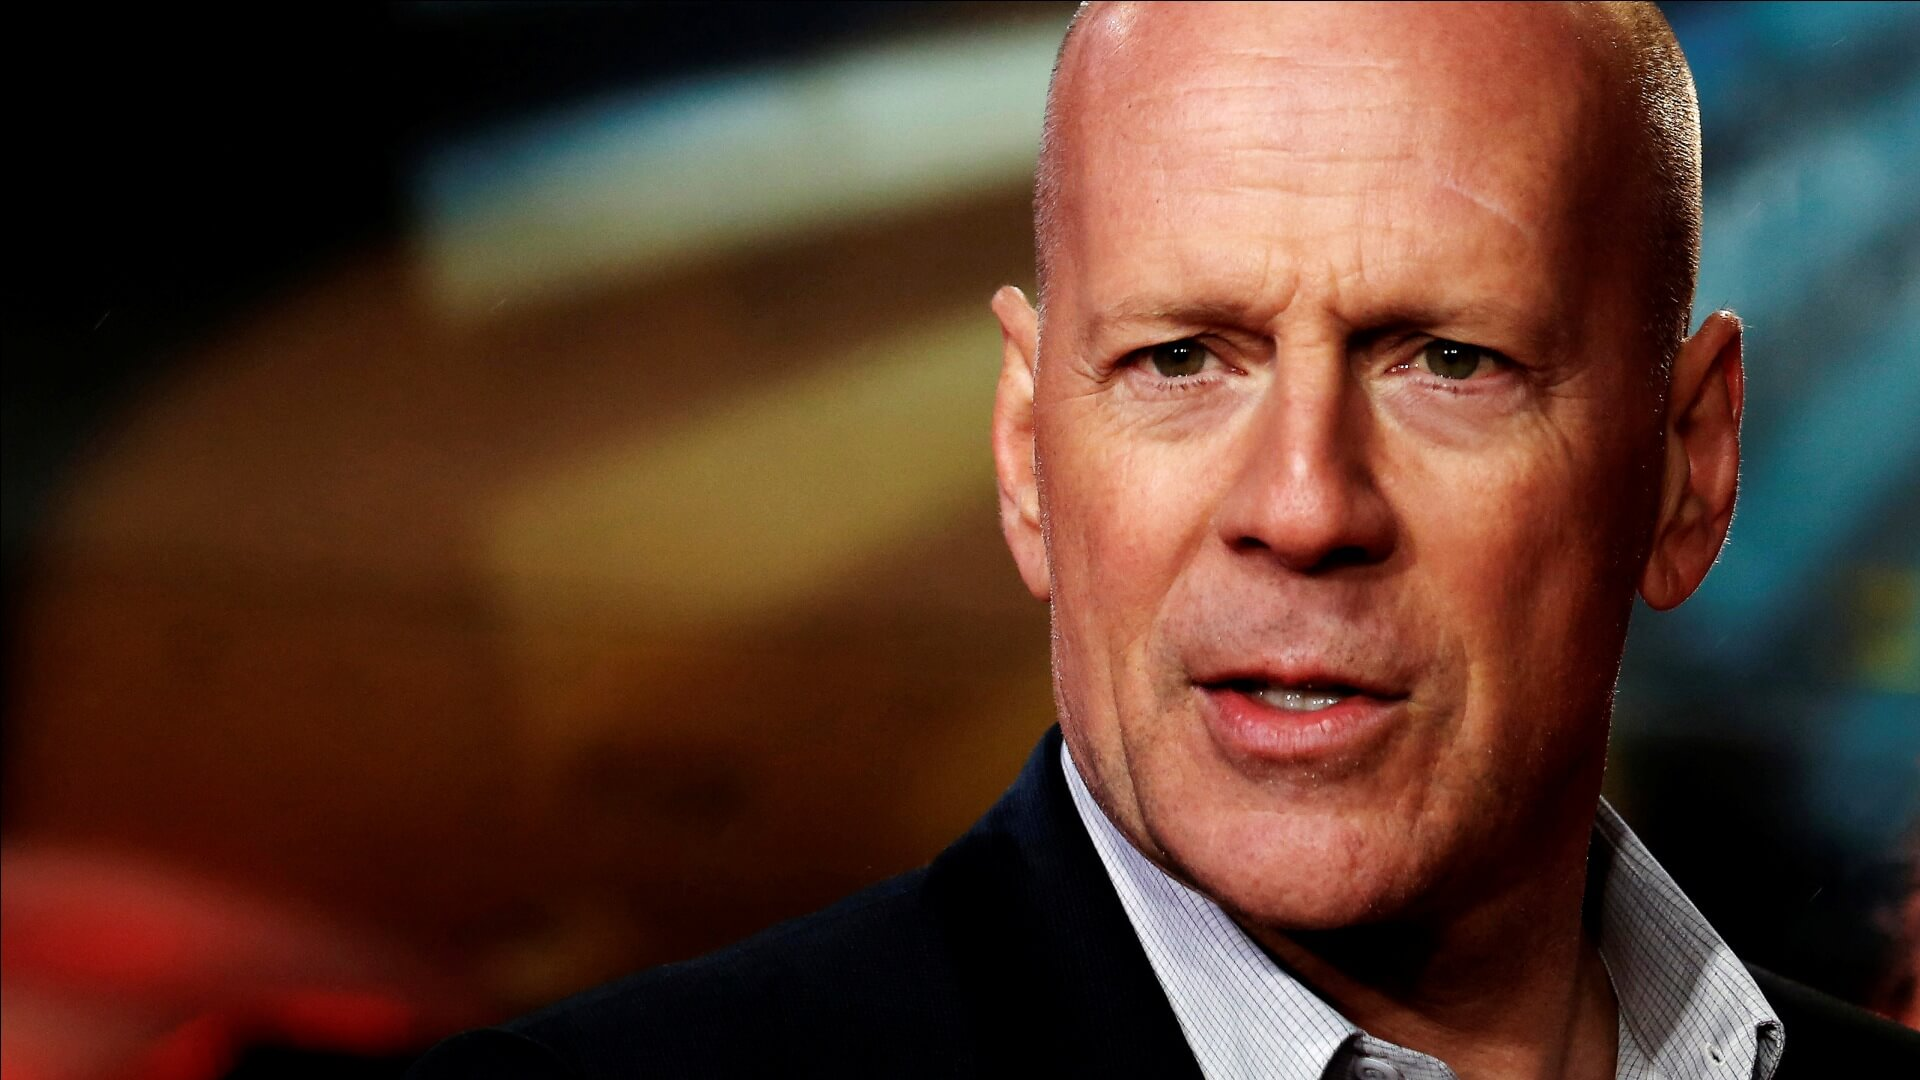 Bruce Willis to Star in Death Wish Remake